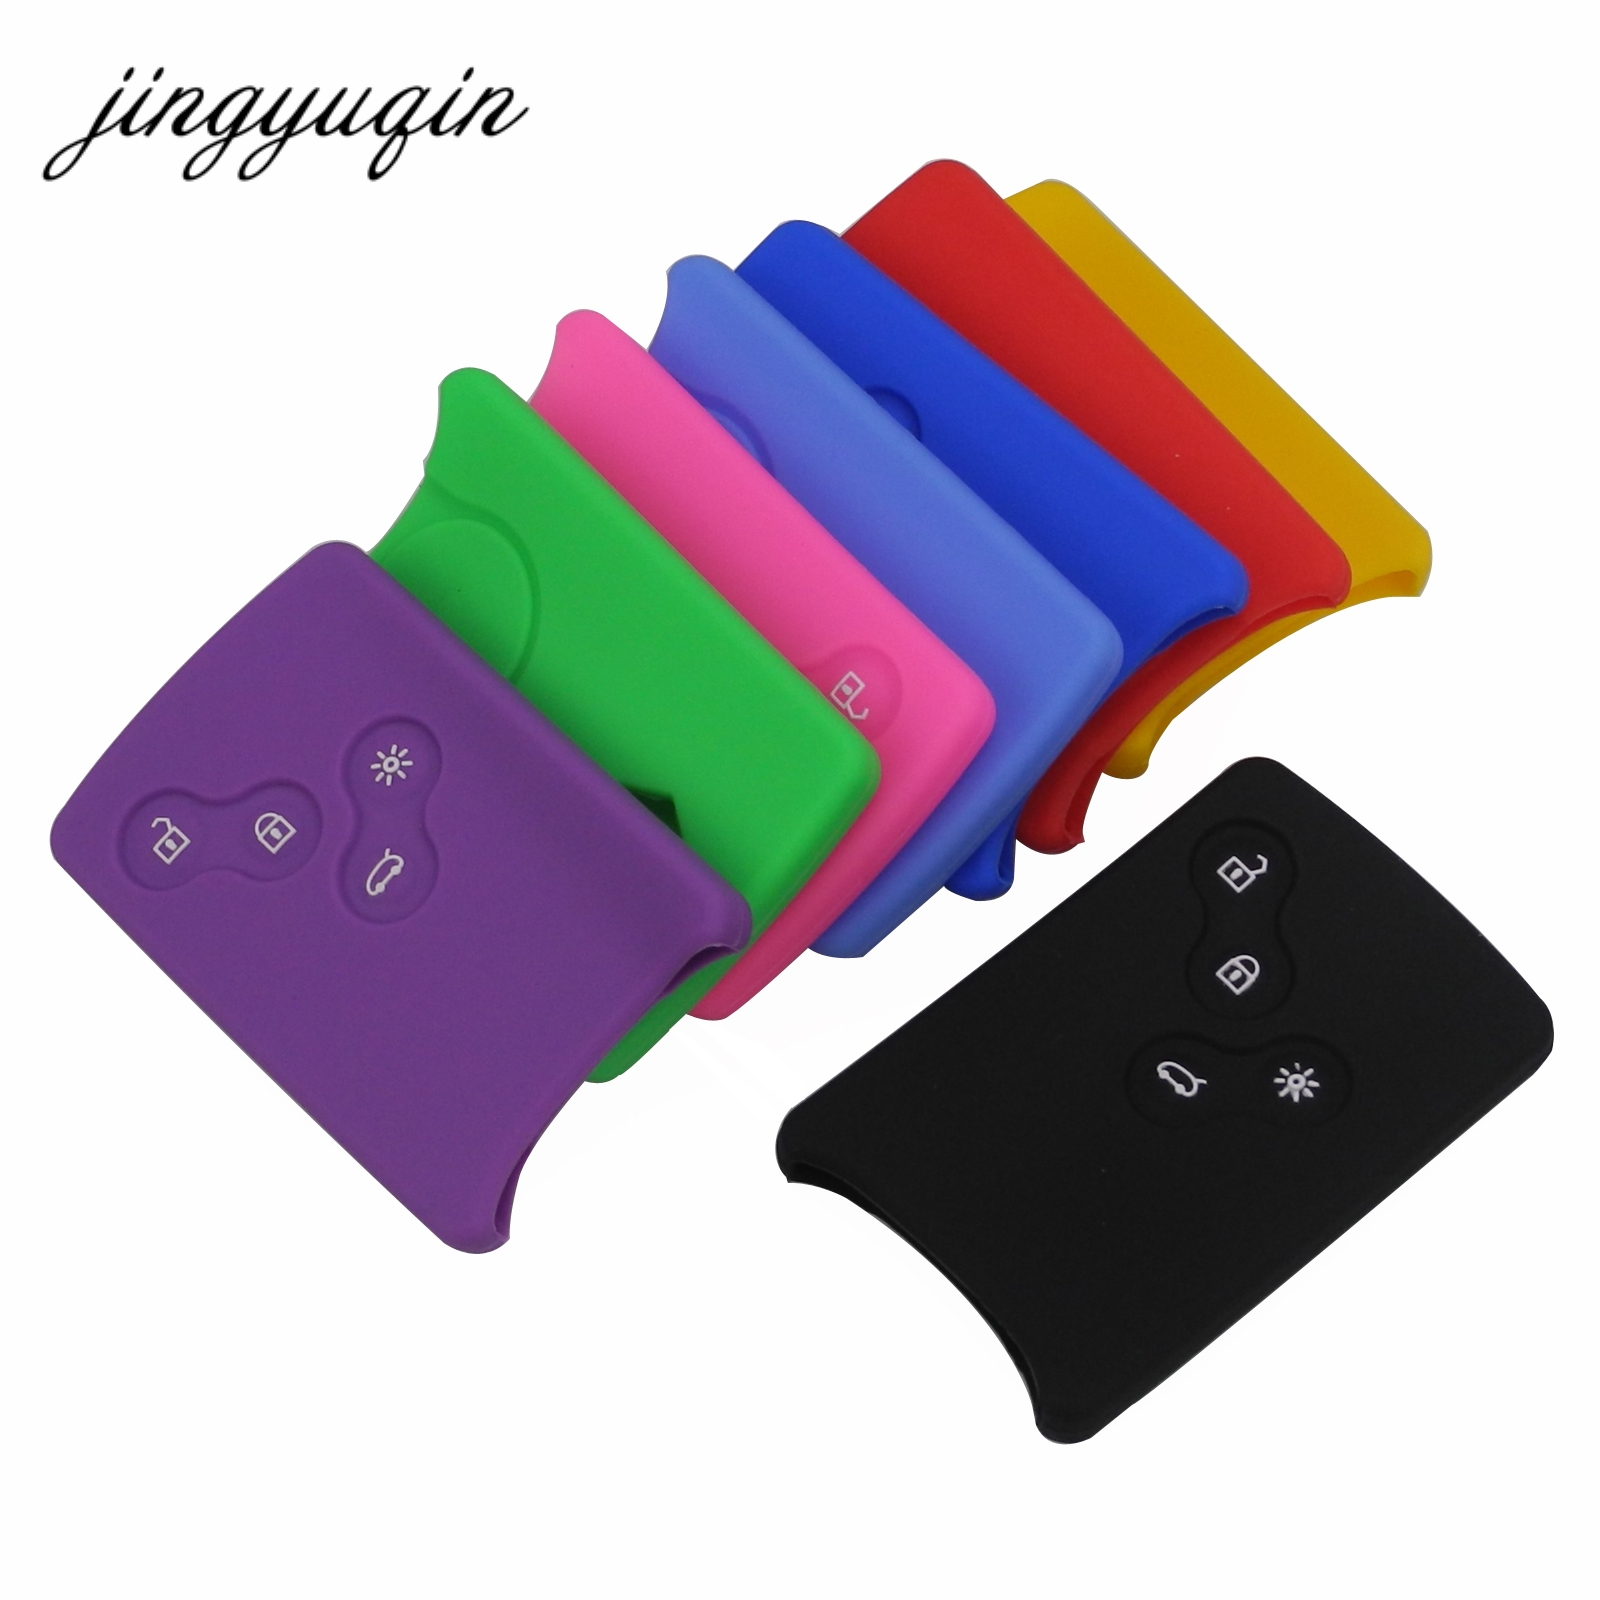 jingyuqin 4 Button Car key Silicone Cover Protector font b Holder b font for Renault Clio